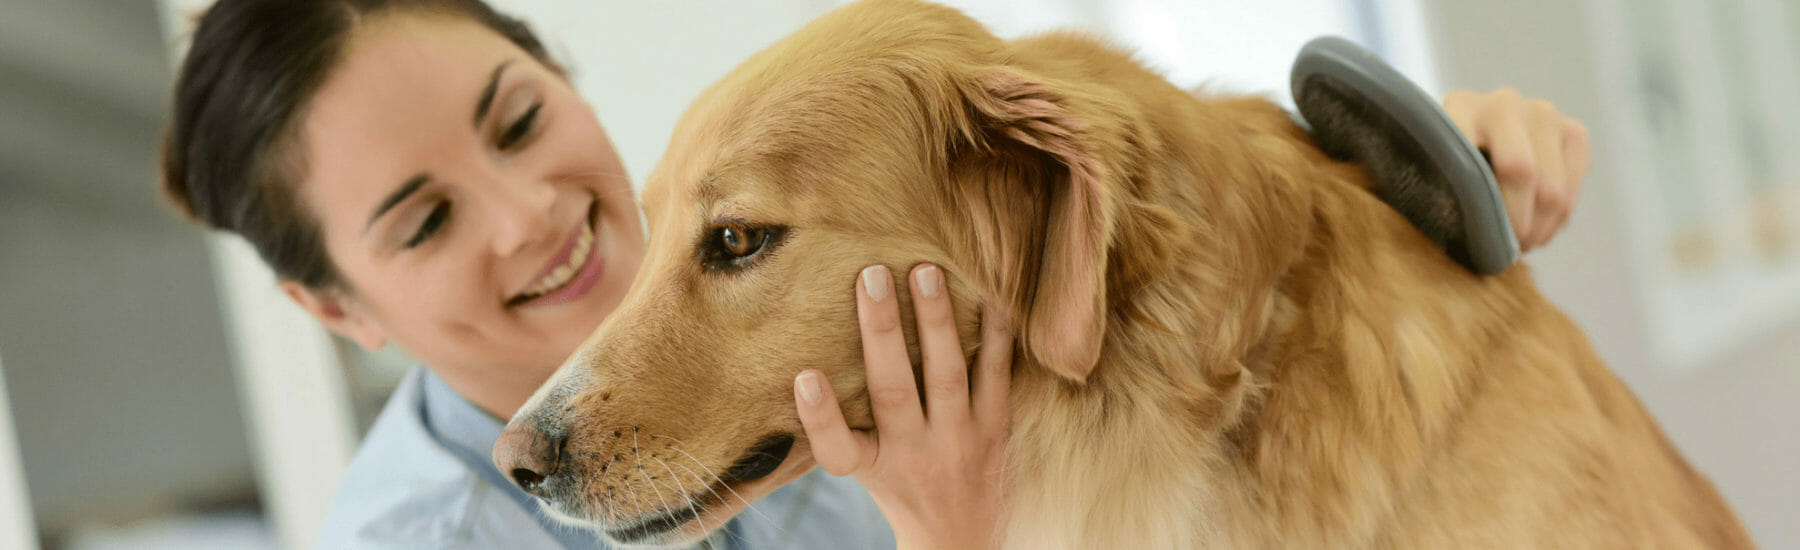 Golden dog getting fur brushed